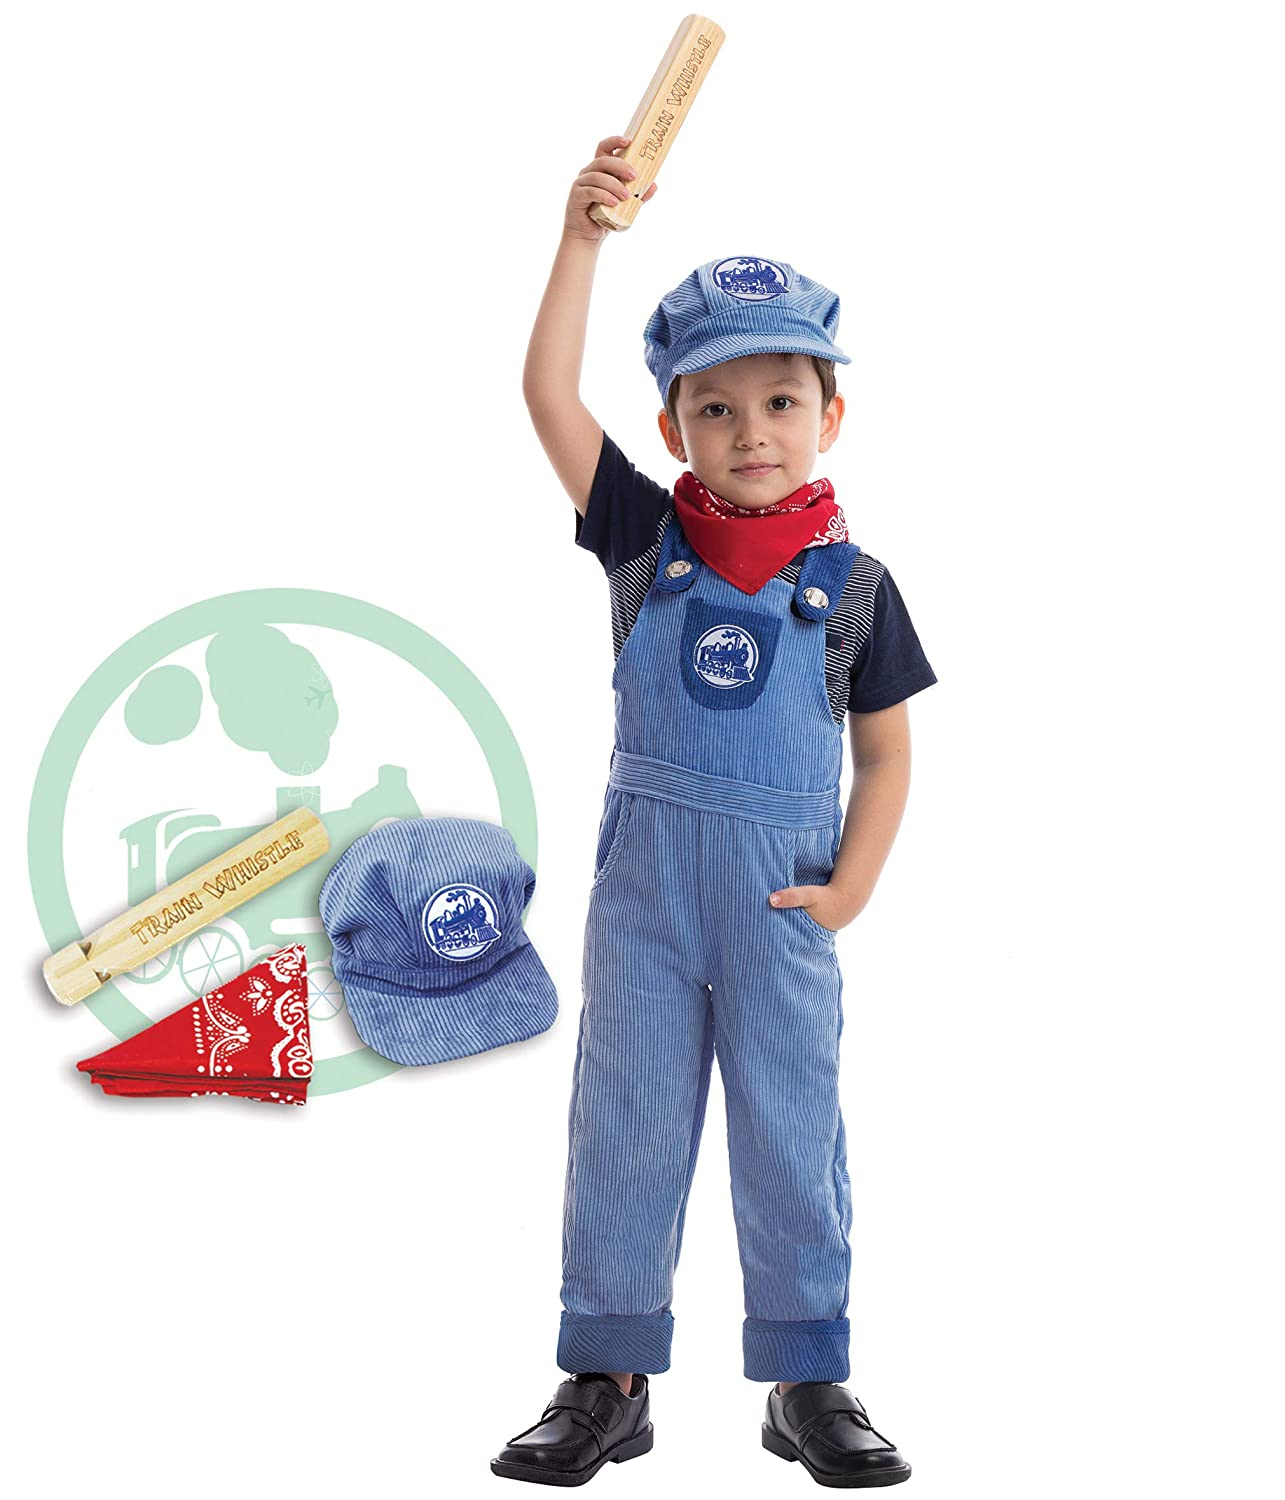 Amazon.com  Spooktacular Creations Train Engineer Costume Deluxe Set for  Kids Halloween Party Dress Up 265791c2c16